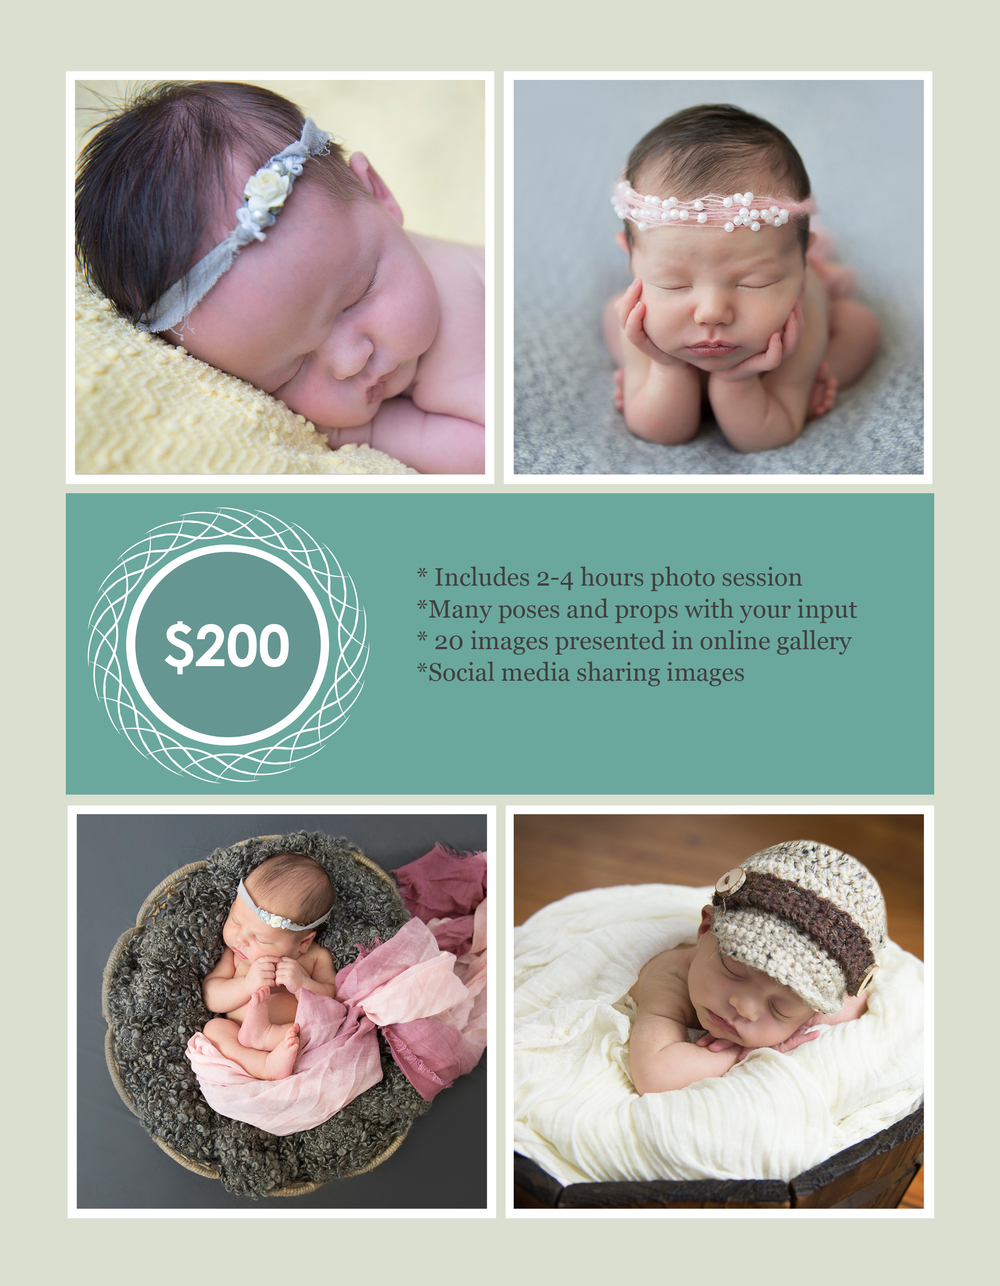 Newborn sessions occur anywhere from 5-14 days new.  Please contact us early to ensure availability.